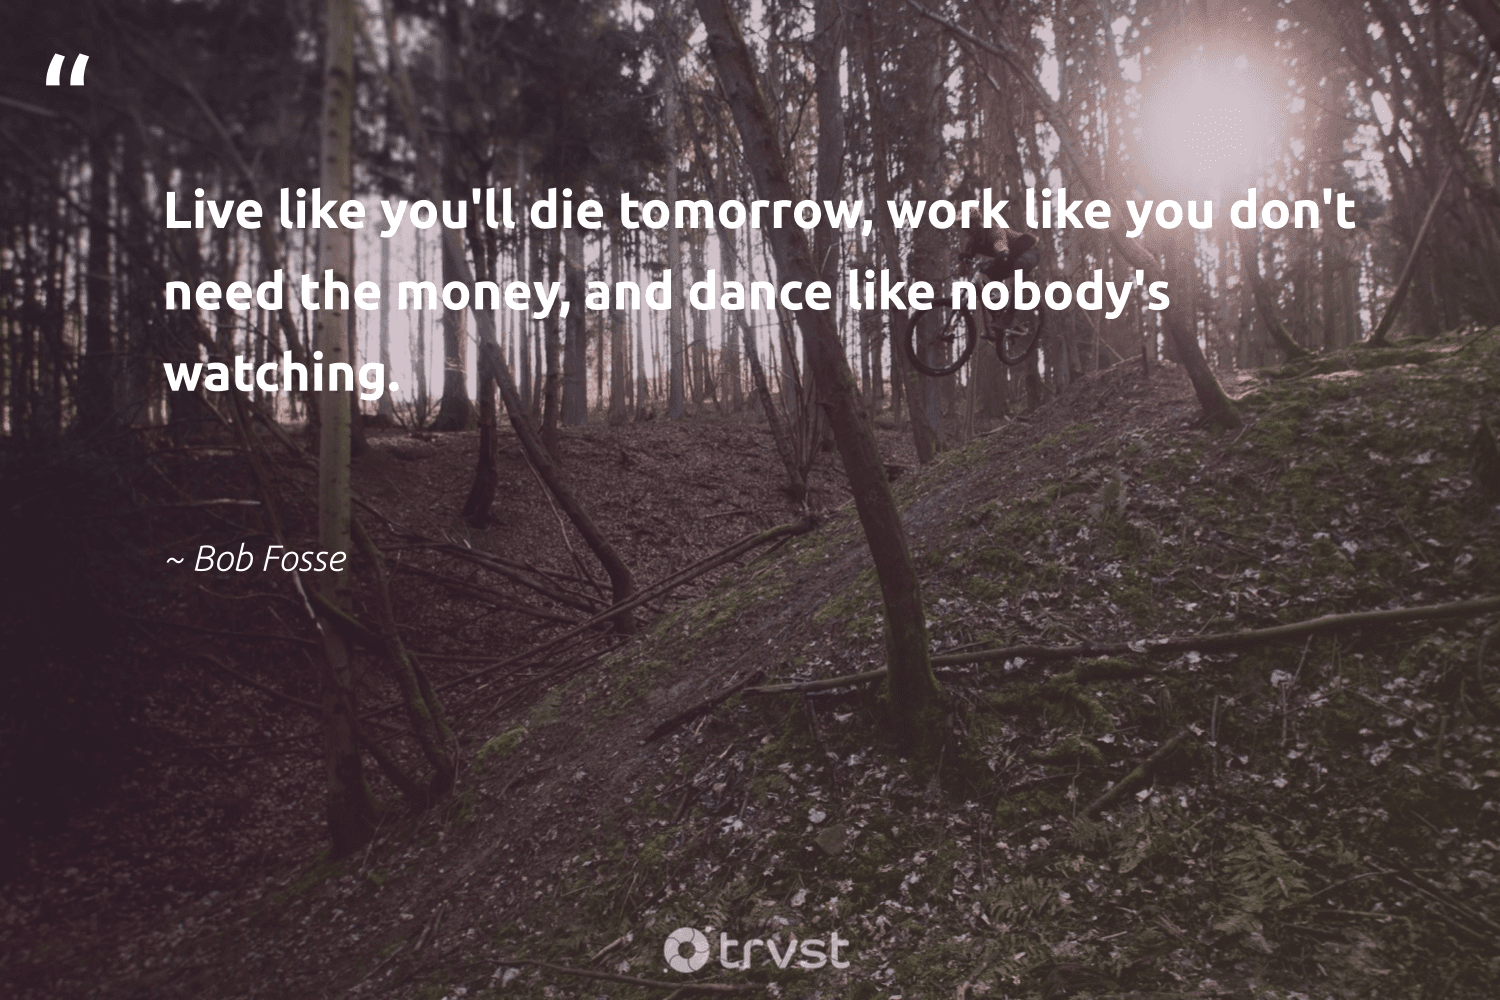 """""""Live like you'll die tomorrow, work like you don't need the money, and dance like nobody's watching.""""  - Bob Fosse #trvst #quotes #softskills #socialimpact #futureofwork #bethechange #begreat #thinkgreen #nevergiveup #socialchange #beinspired #ecoconscious"""